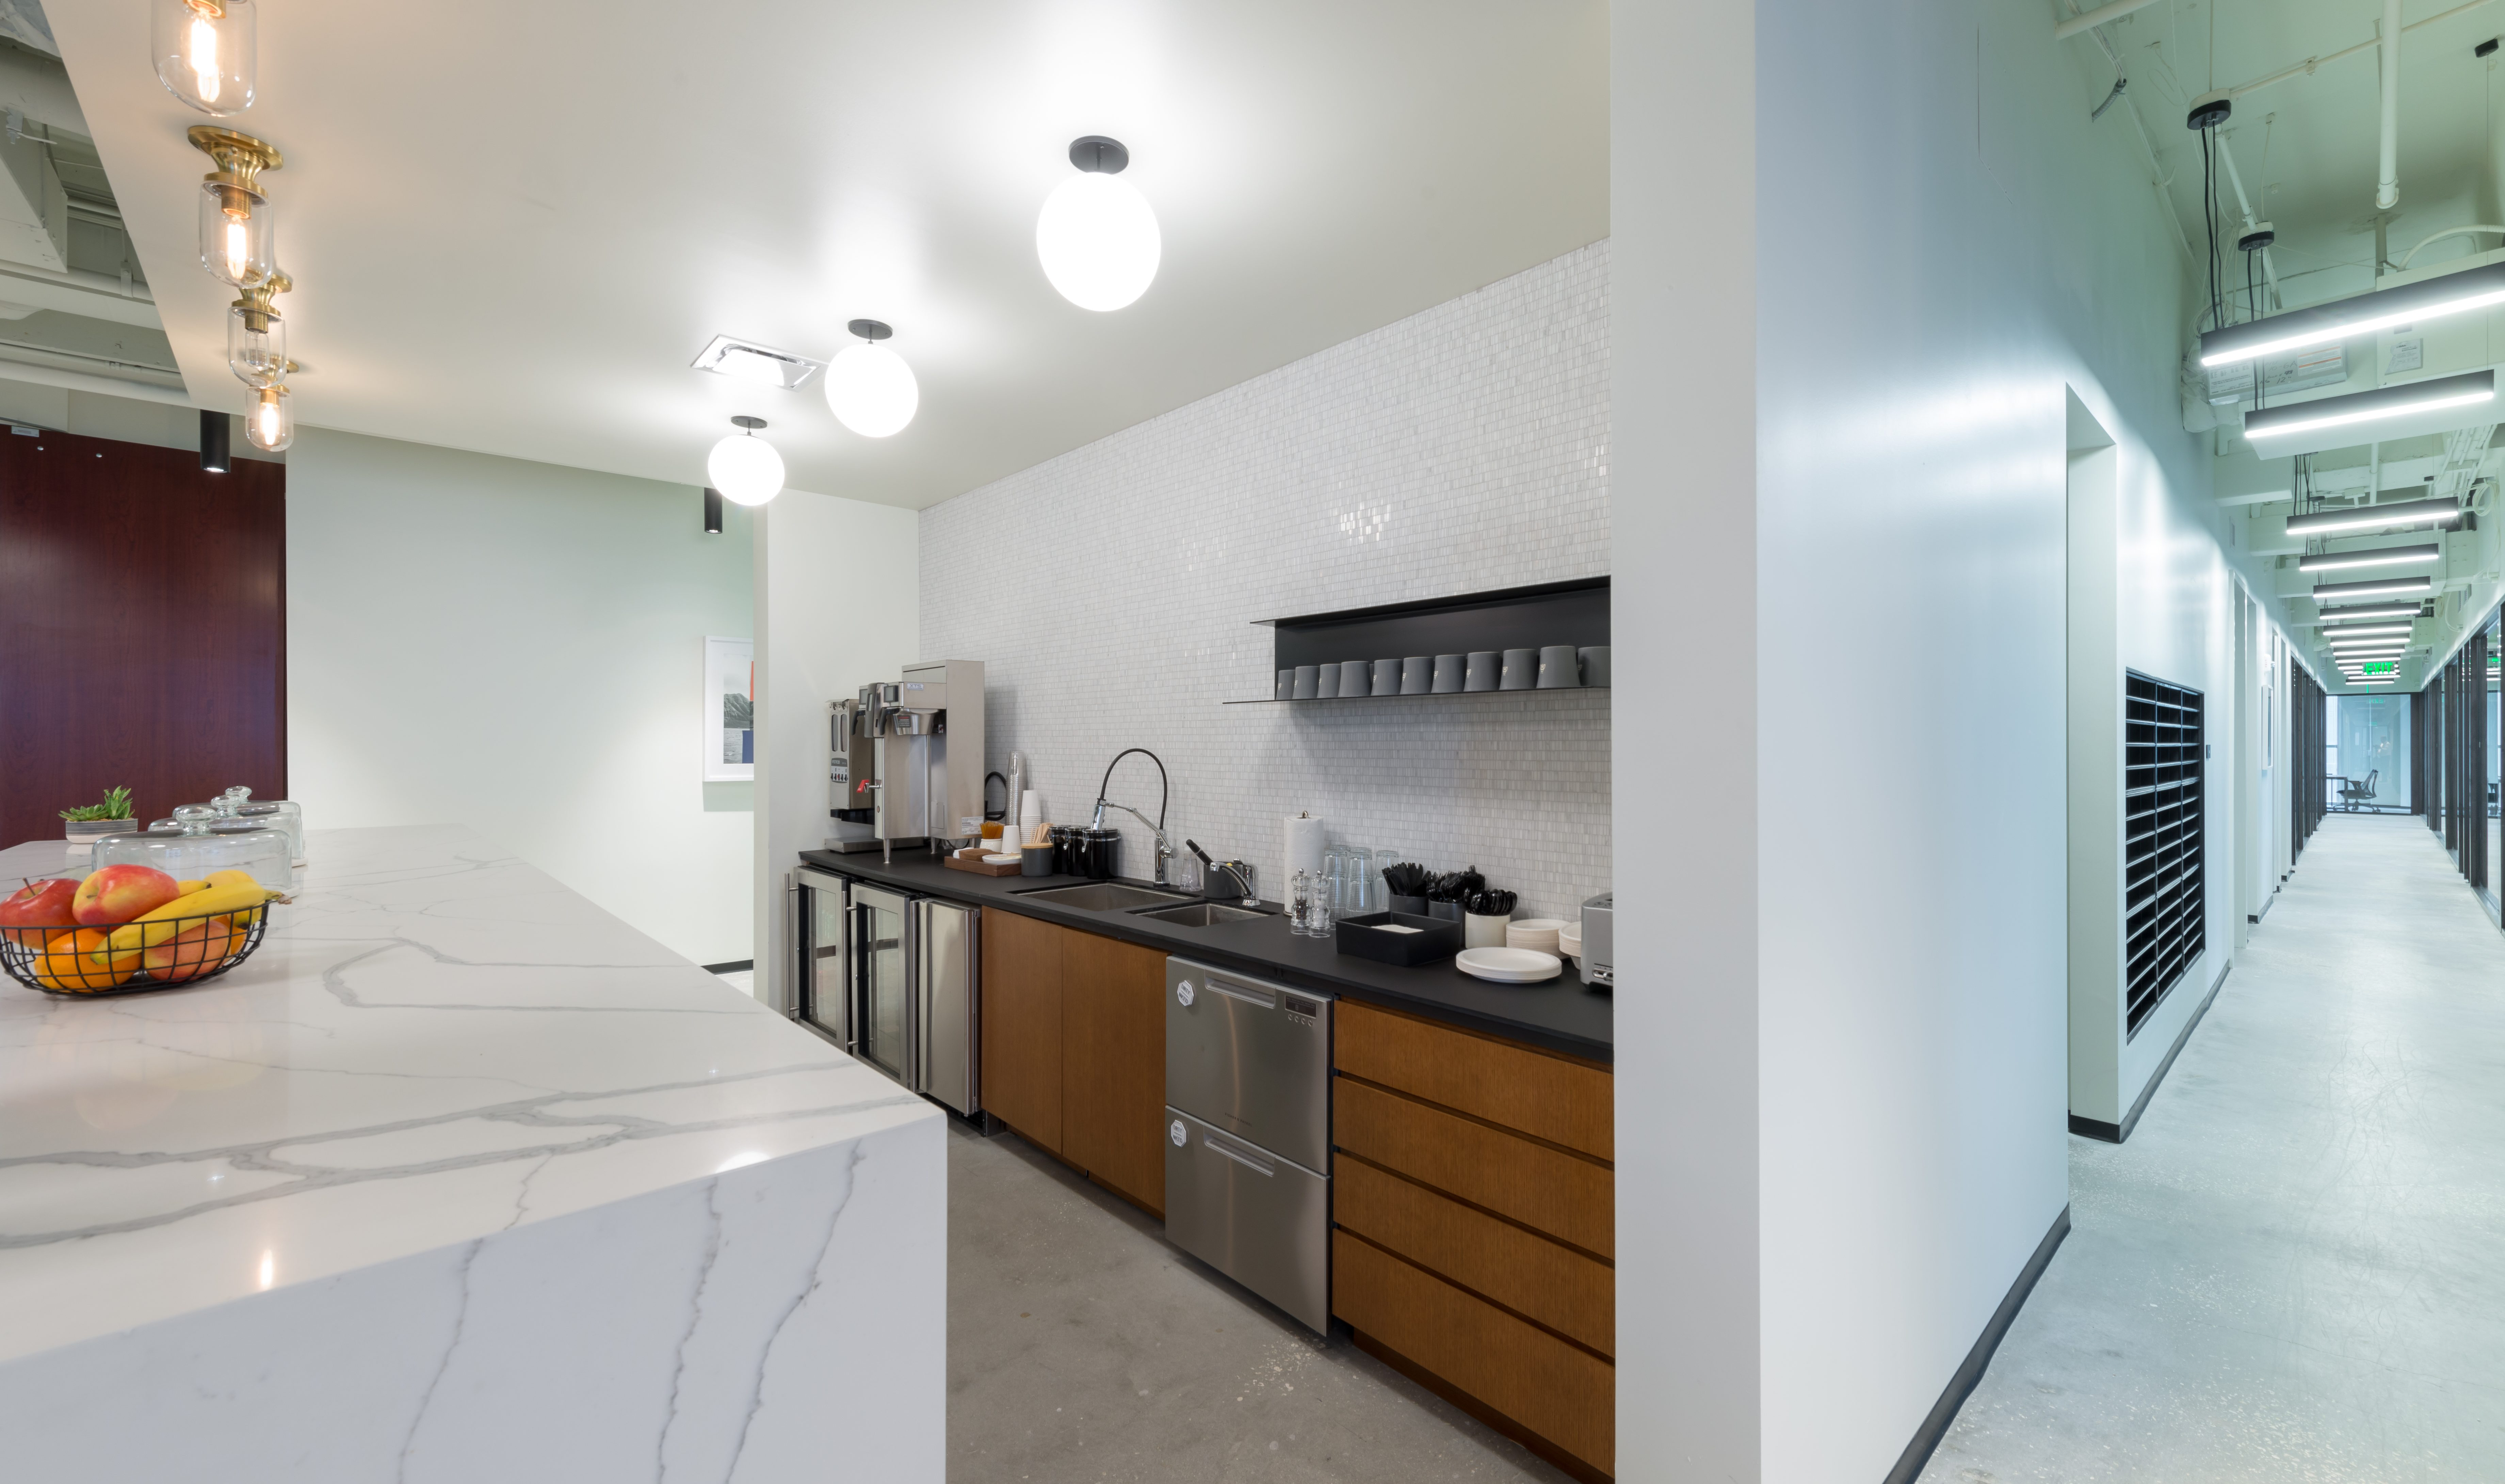 Industrious Kitchen Area Showing Tile Wall and Modern Design